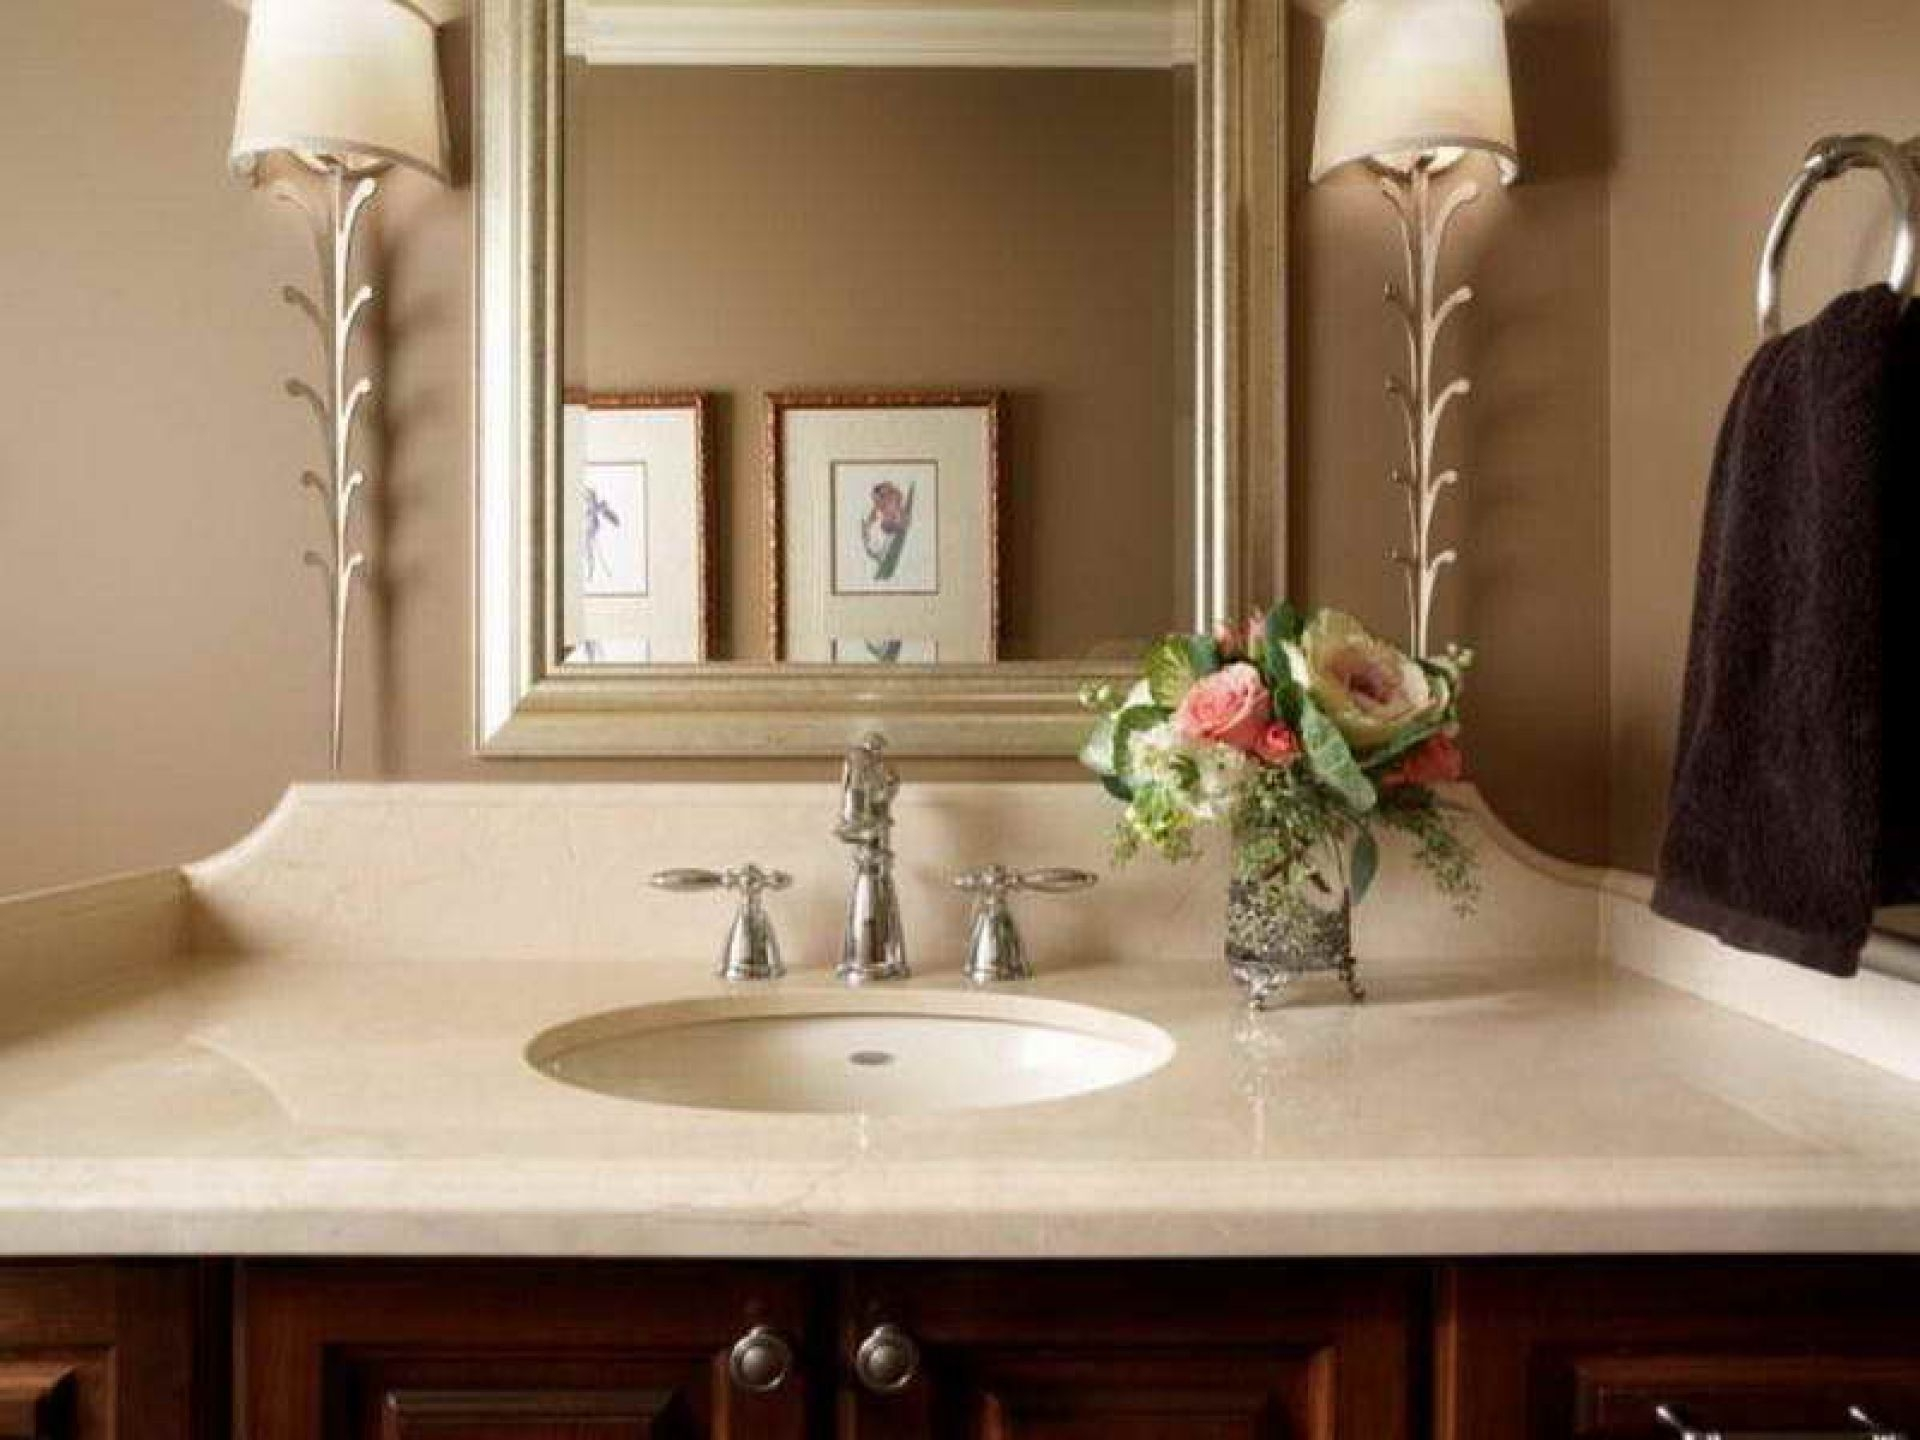 Ideas, brushed nickel faucet small powder room design ideas design wide pertaining to size 1920 x 1440  .